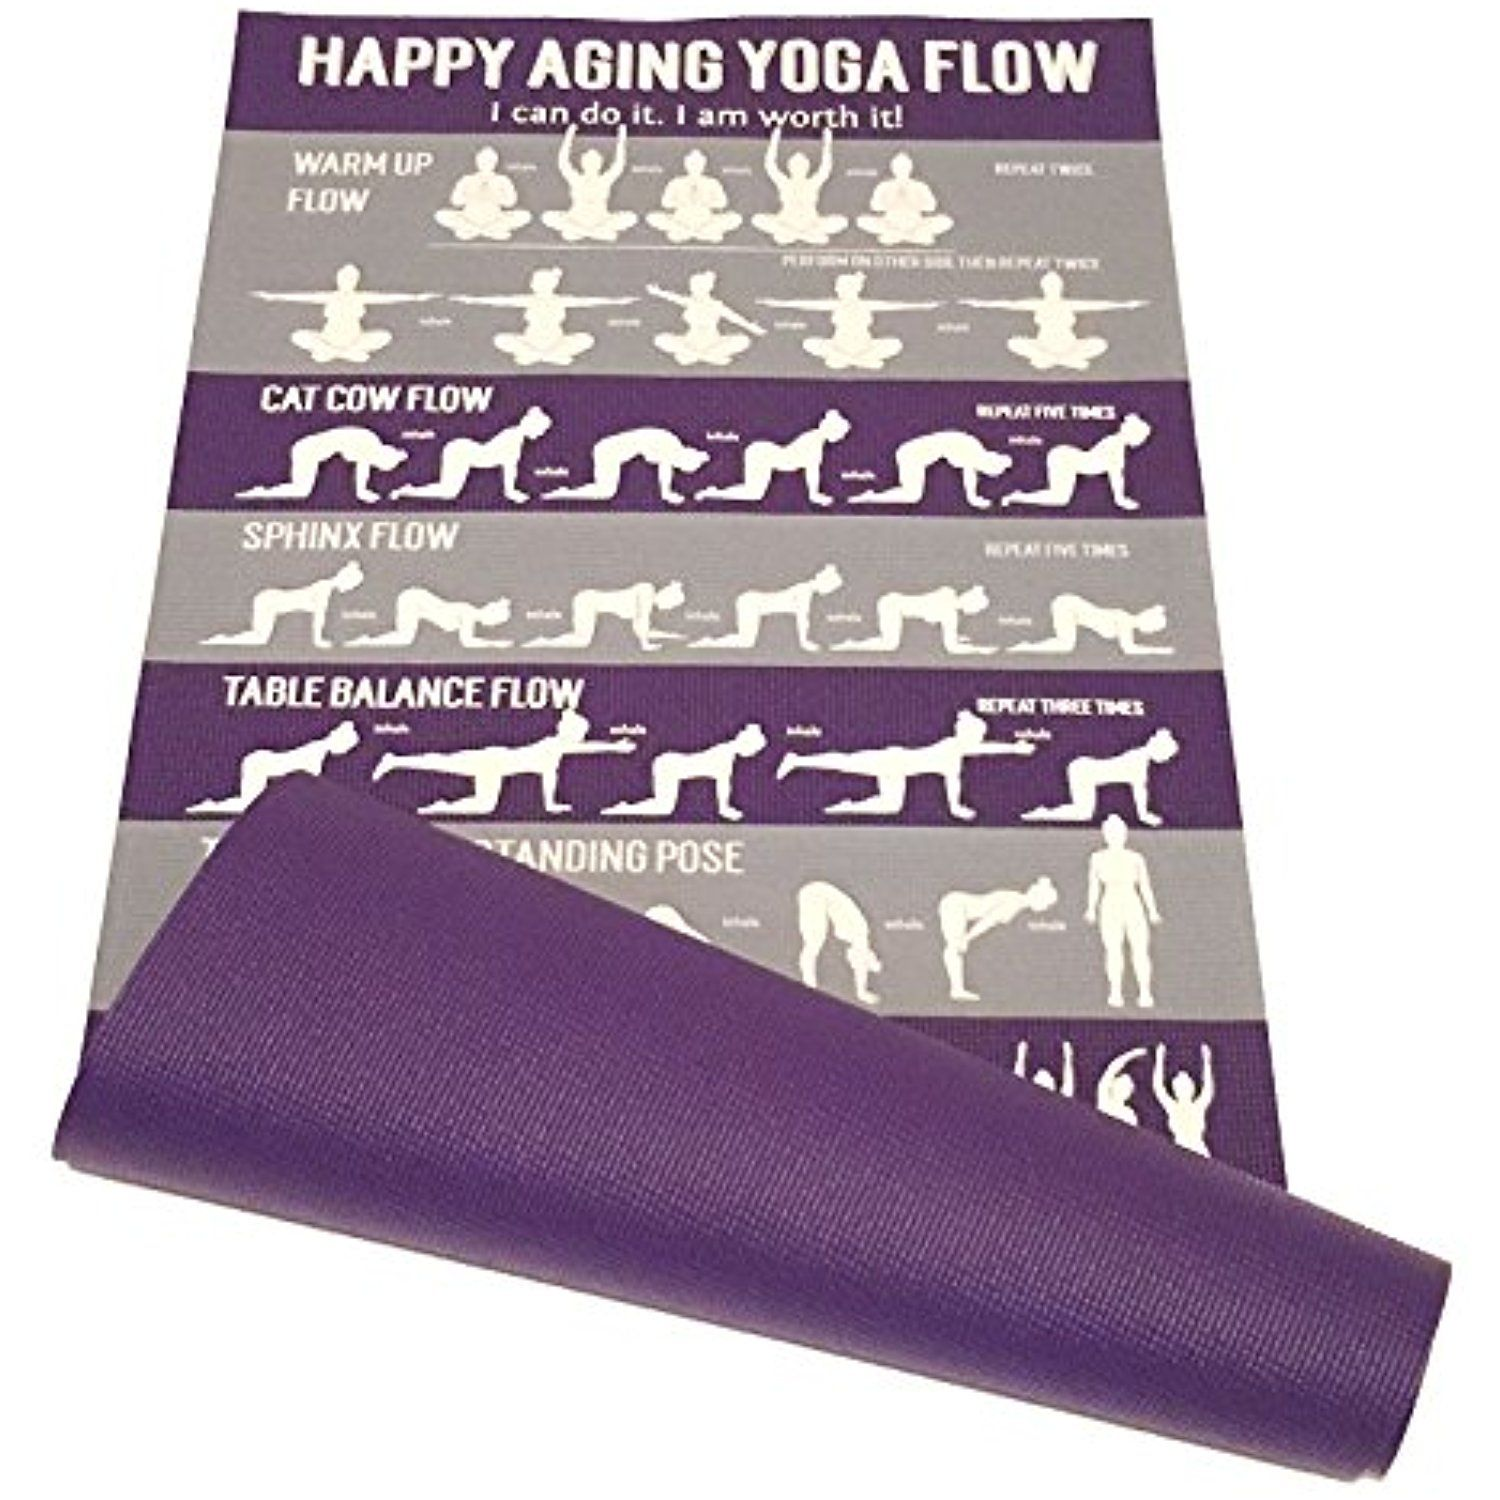 Learn Yoga Happy Aging Yoga Mat And Instructional Videos Click On The Image For Additional Details This Is An Affiliate Link Learn Yoga Happy Yoga Yoga